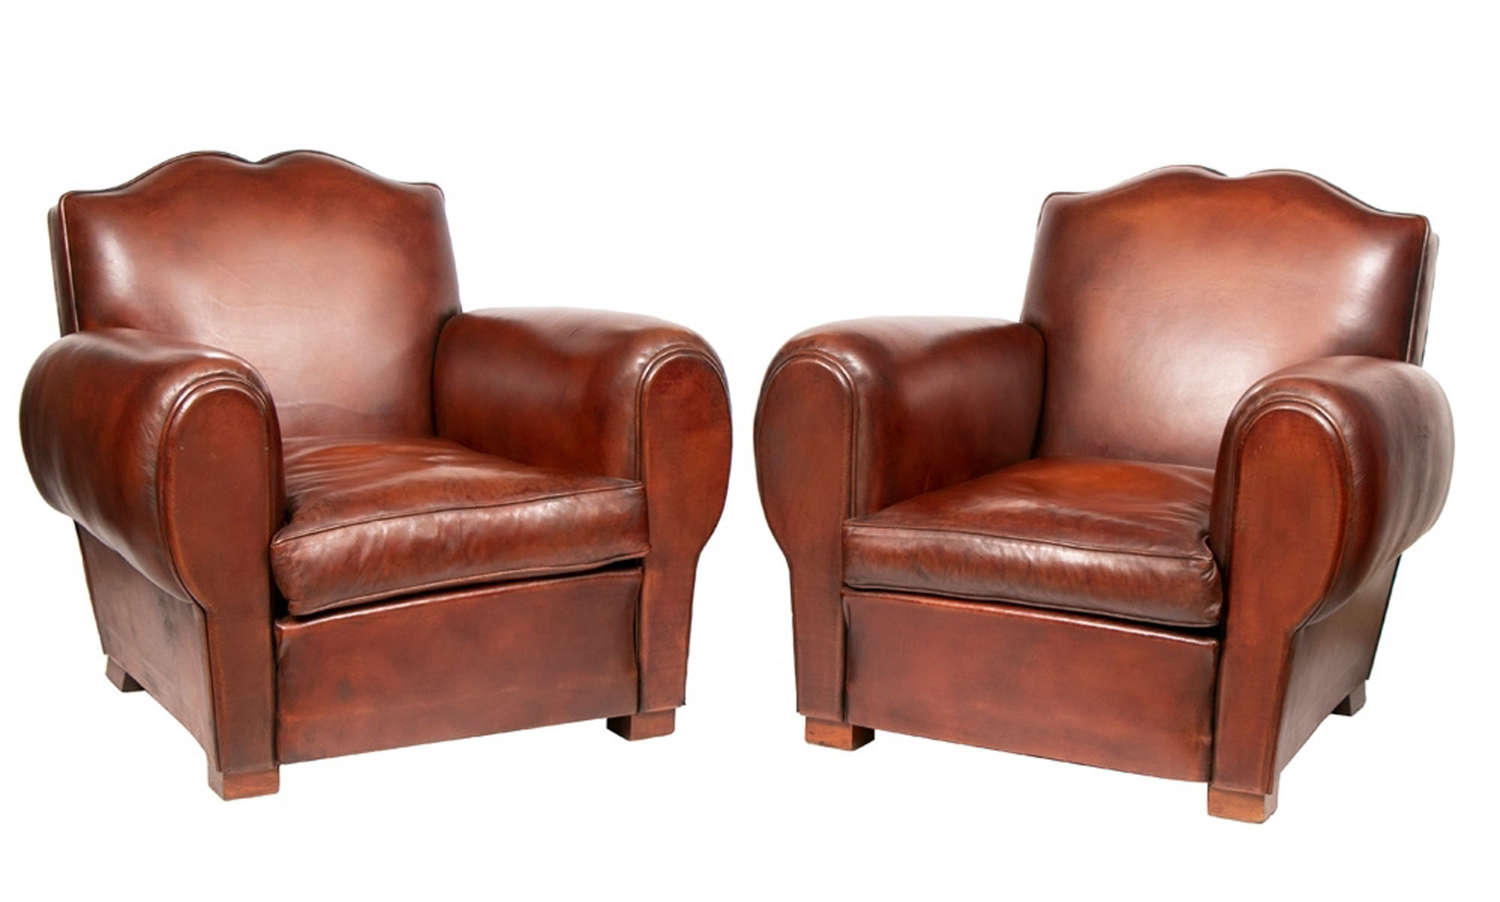 Pair of Moustache Club Chairs c.1930s